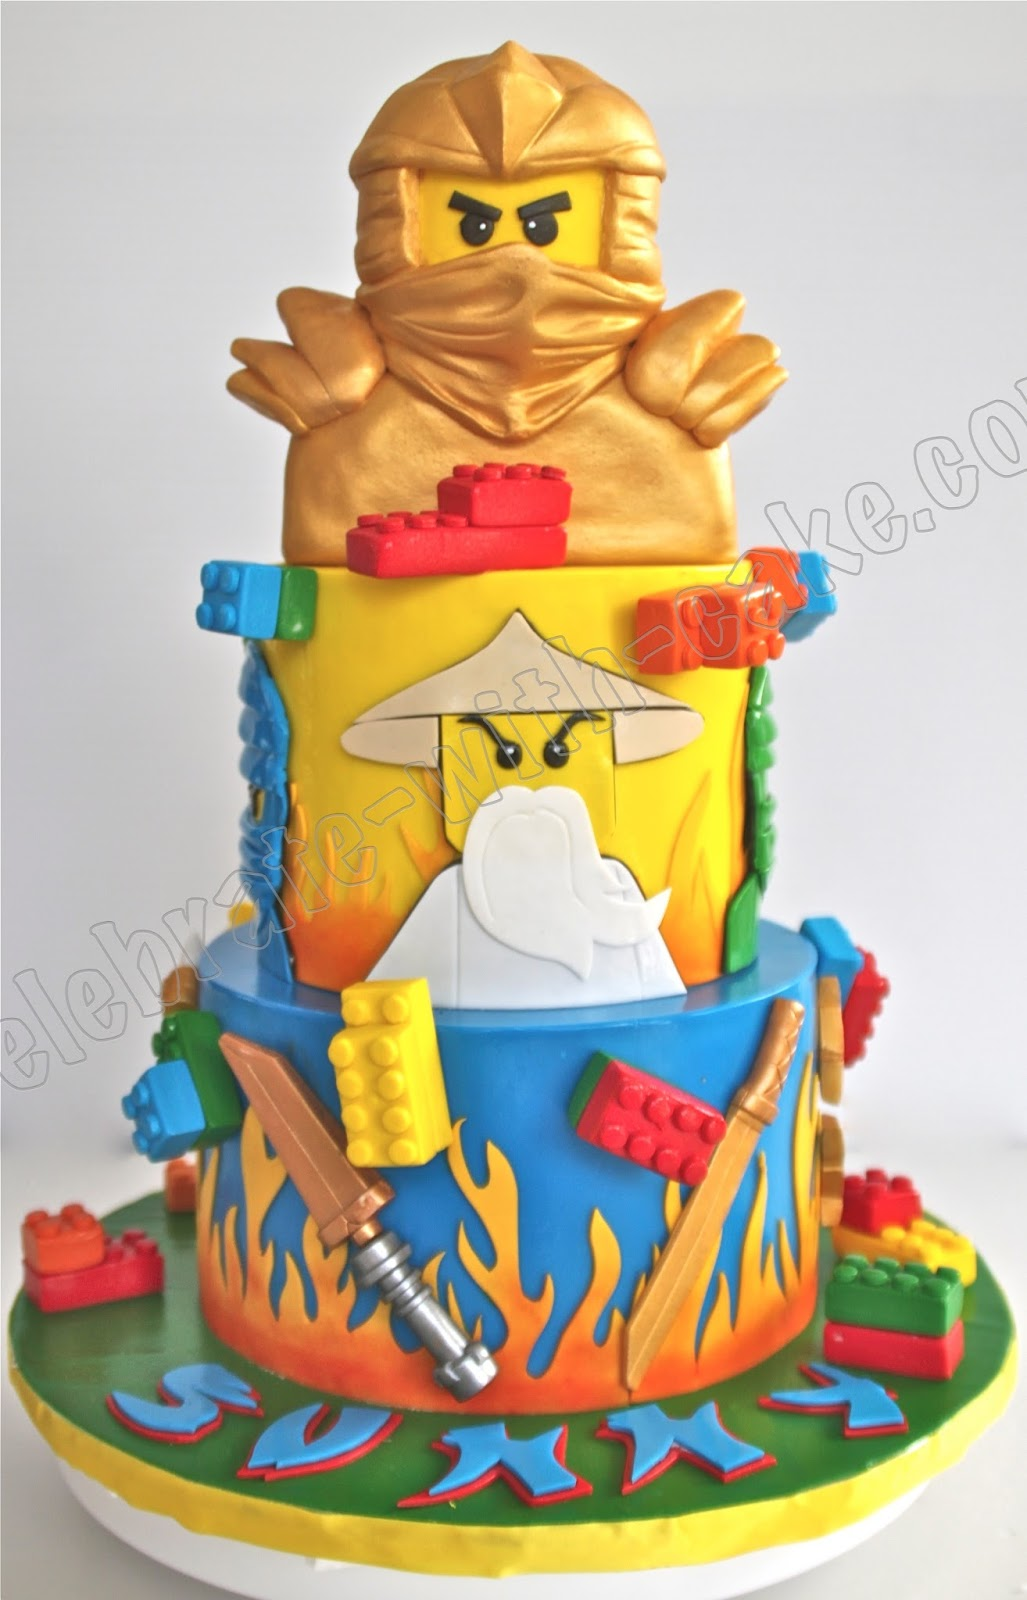 Celebrate with cake lego ninjago tier cake for Anpanman cake decoration